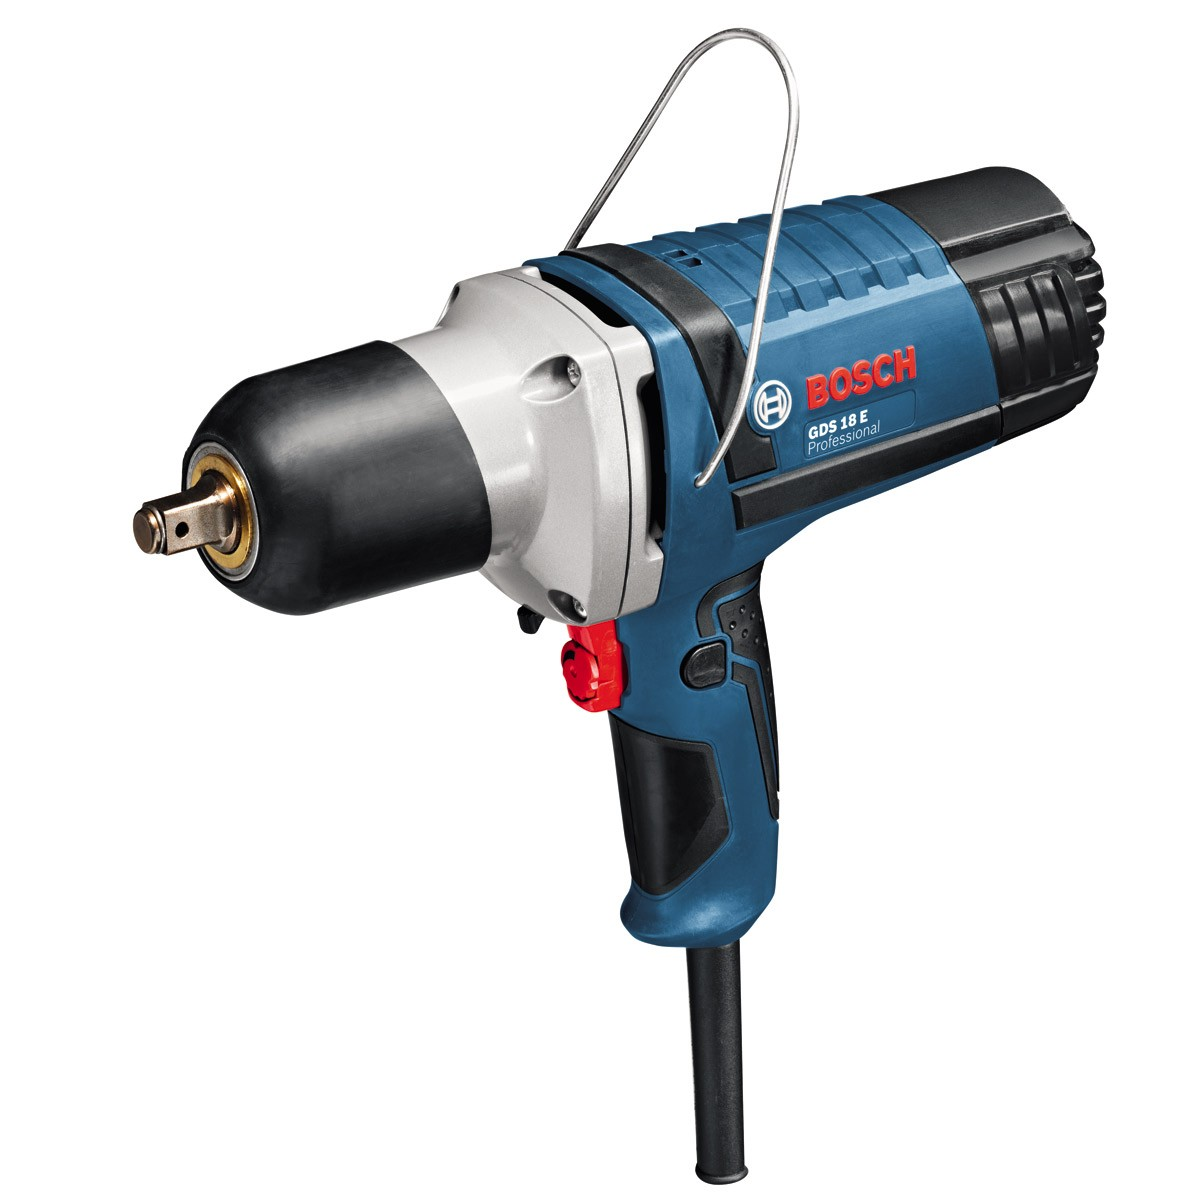 "Bosch GDS 18 E Professional 1/2"" Impact Wrench"